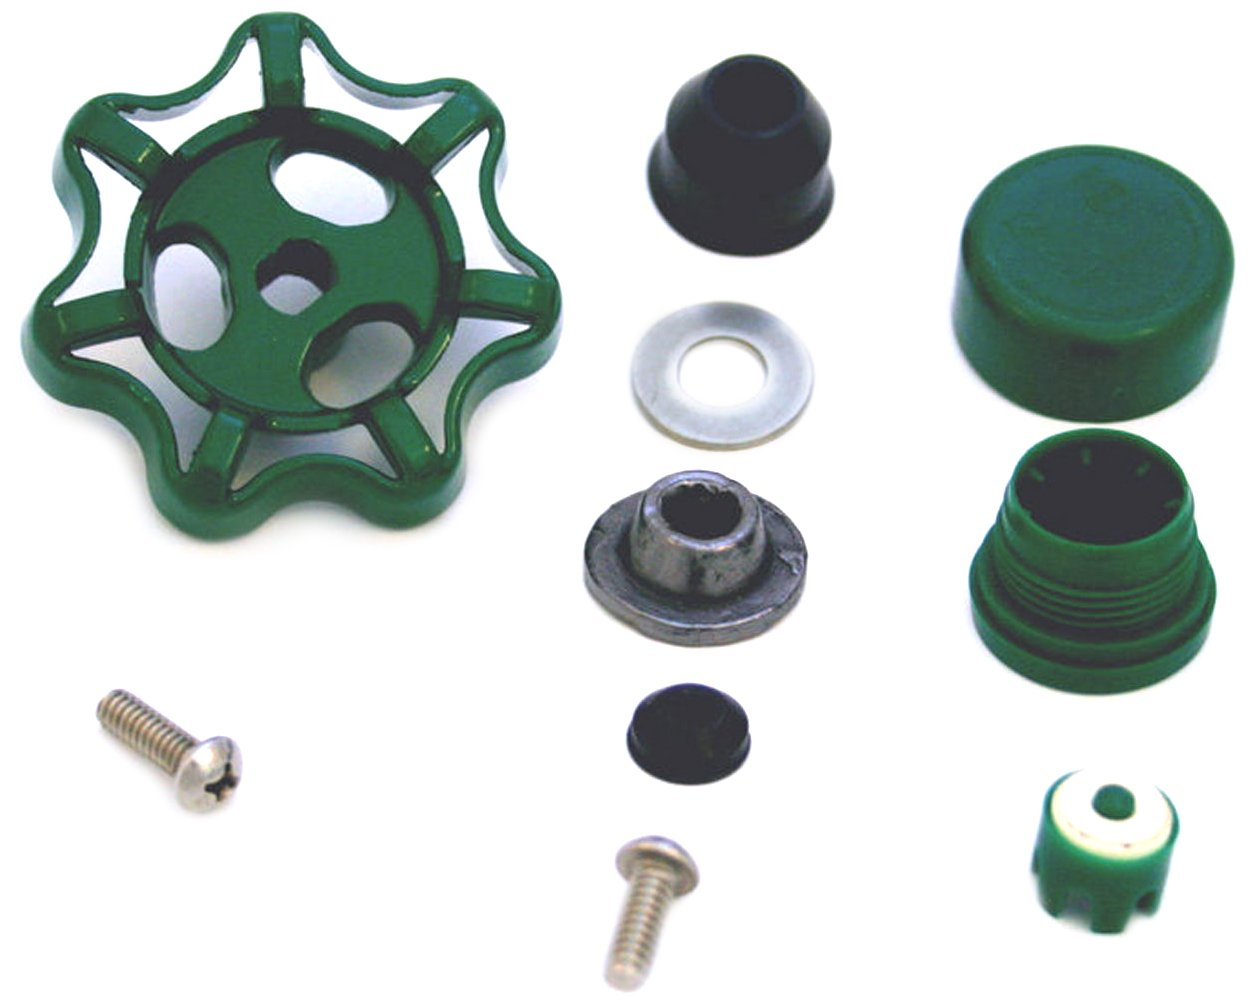 Prier C-144KT-807 Parts Kit for Style Prier C-144